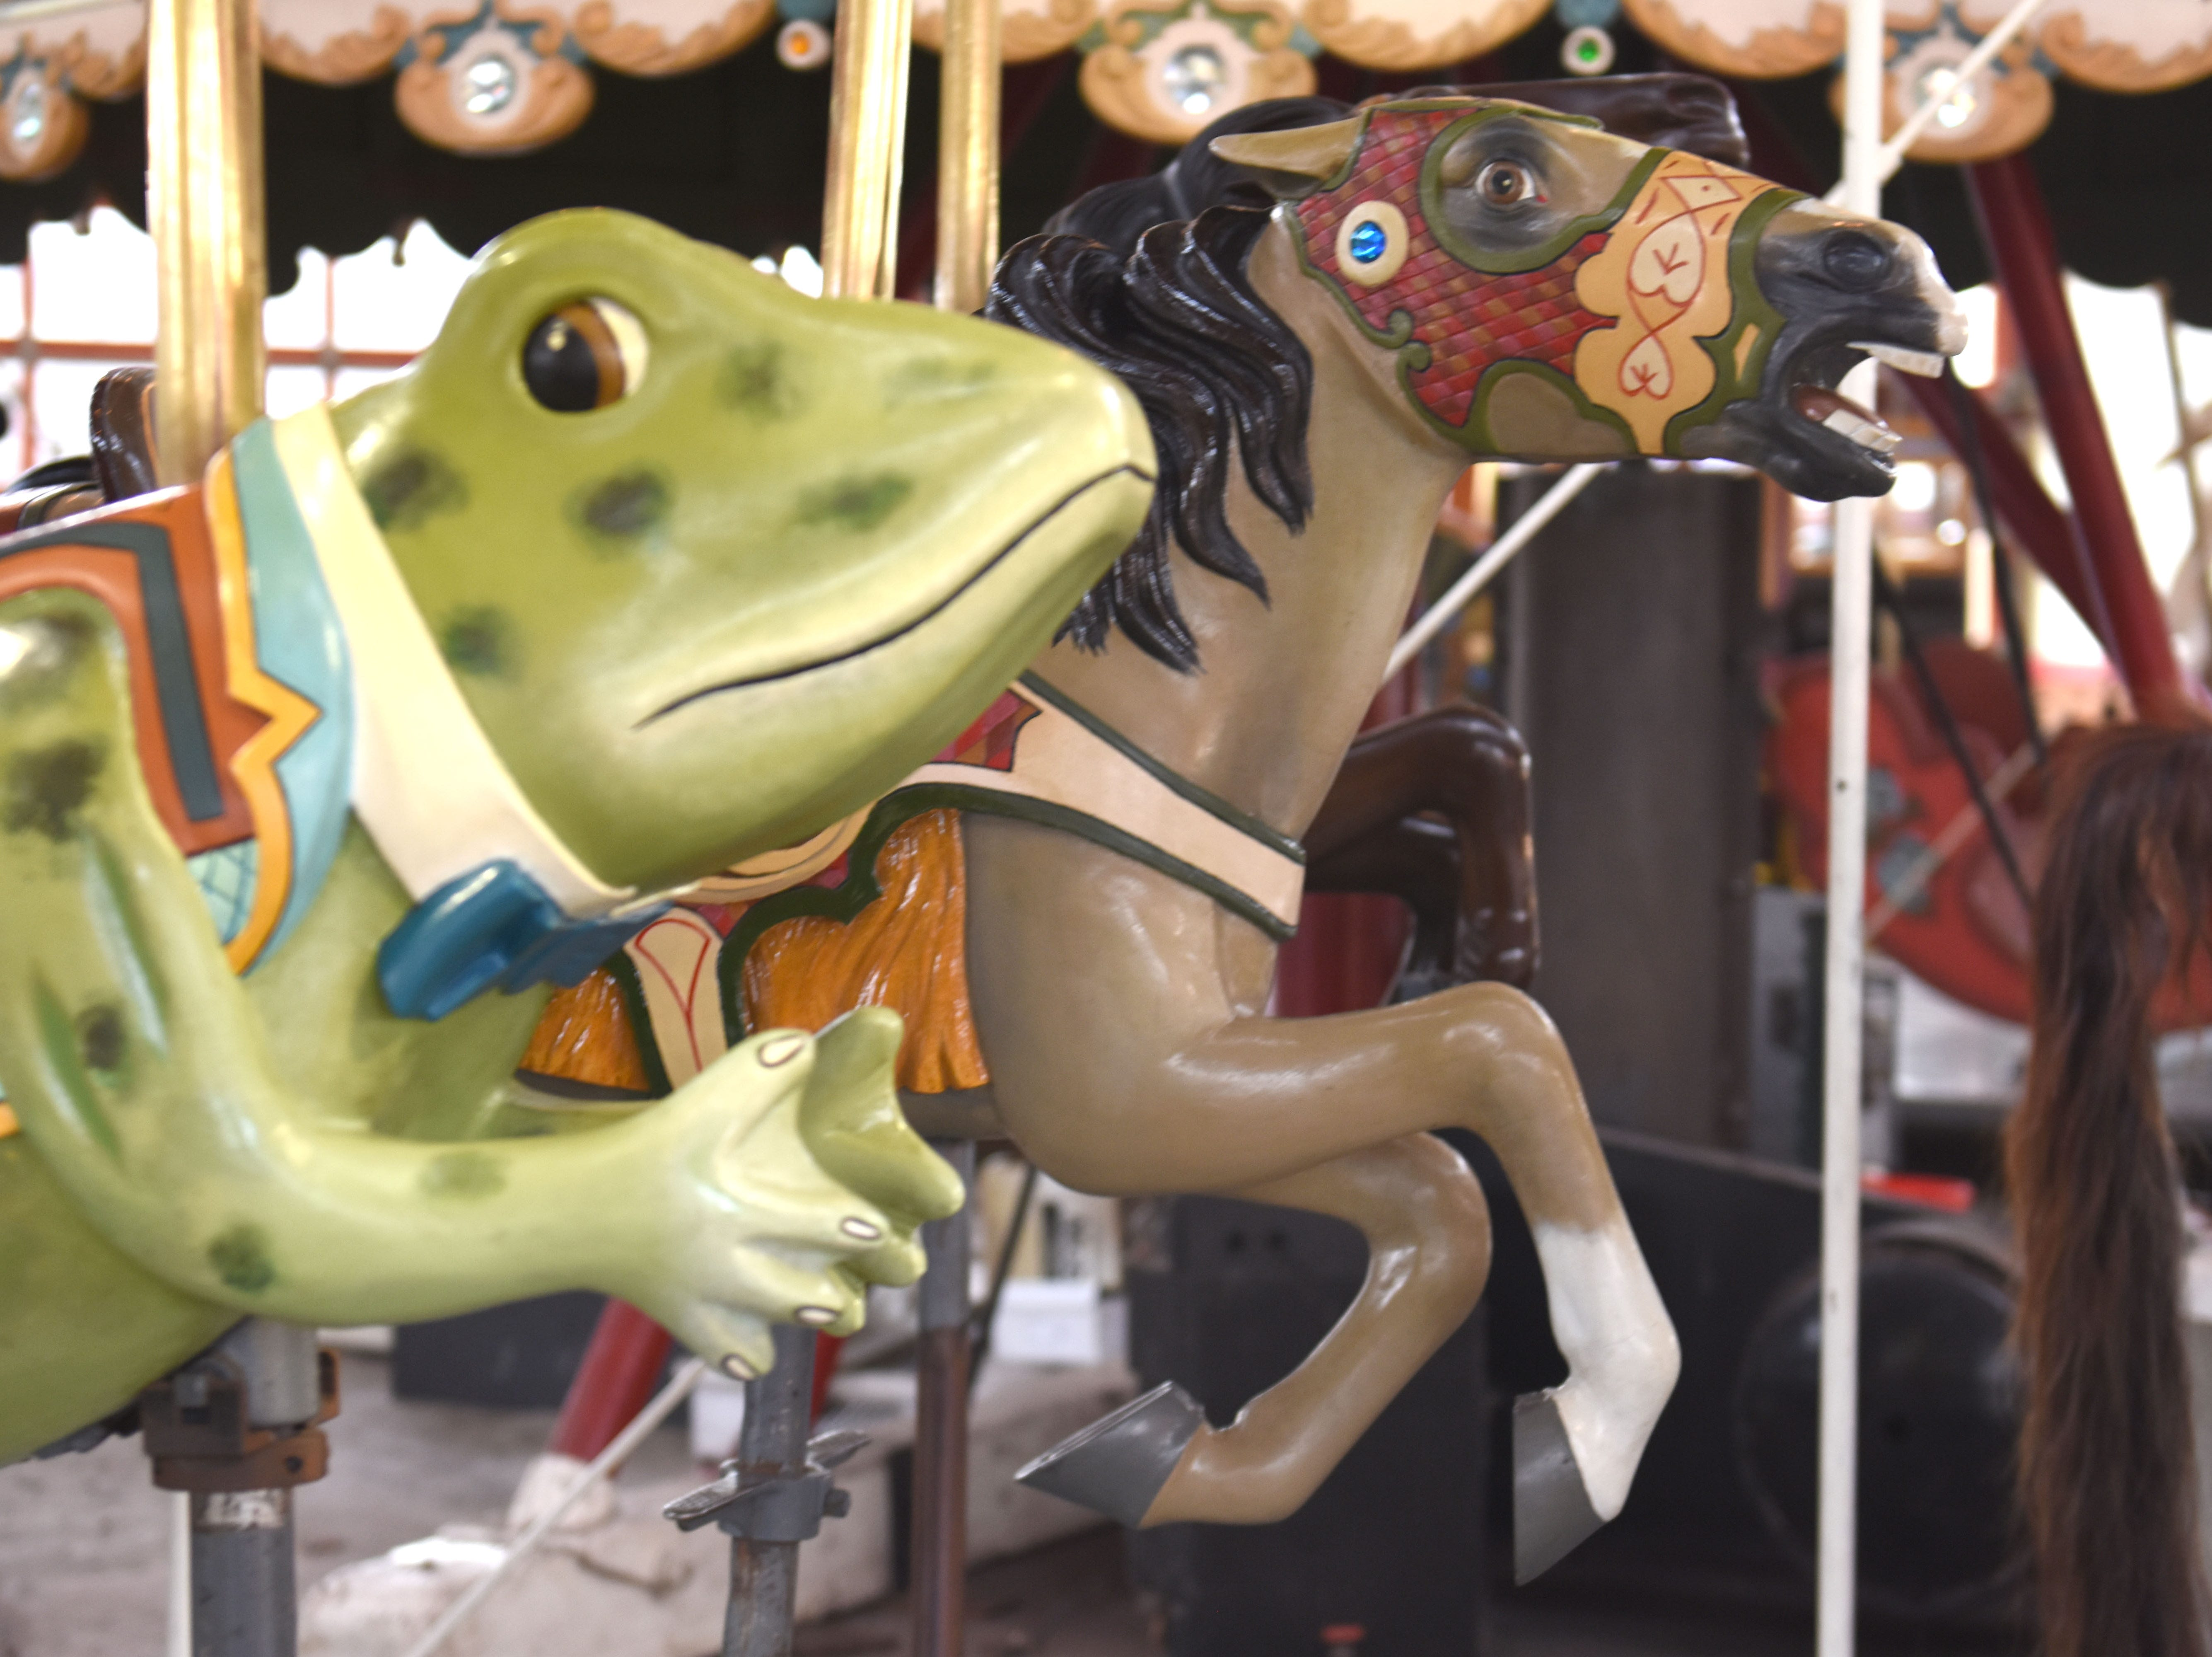 A horse and frog are two of the many carousel figures at Greenfield Village.